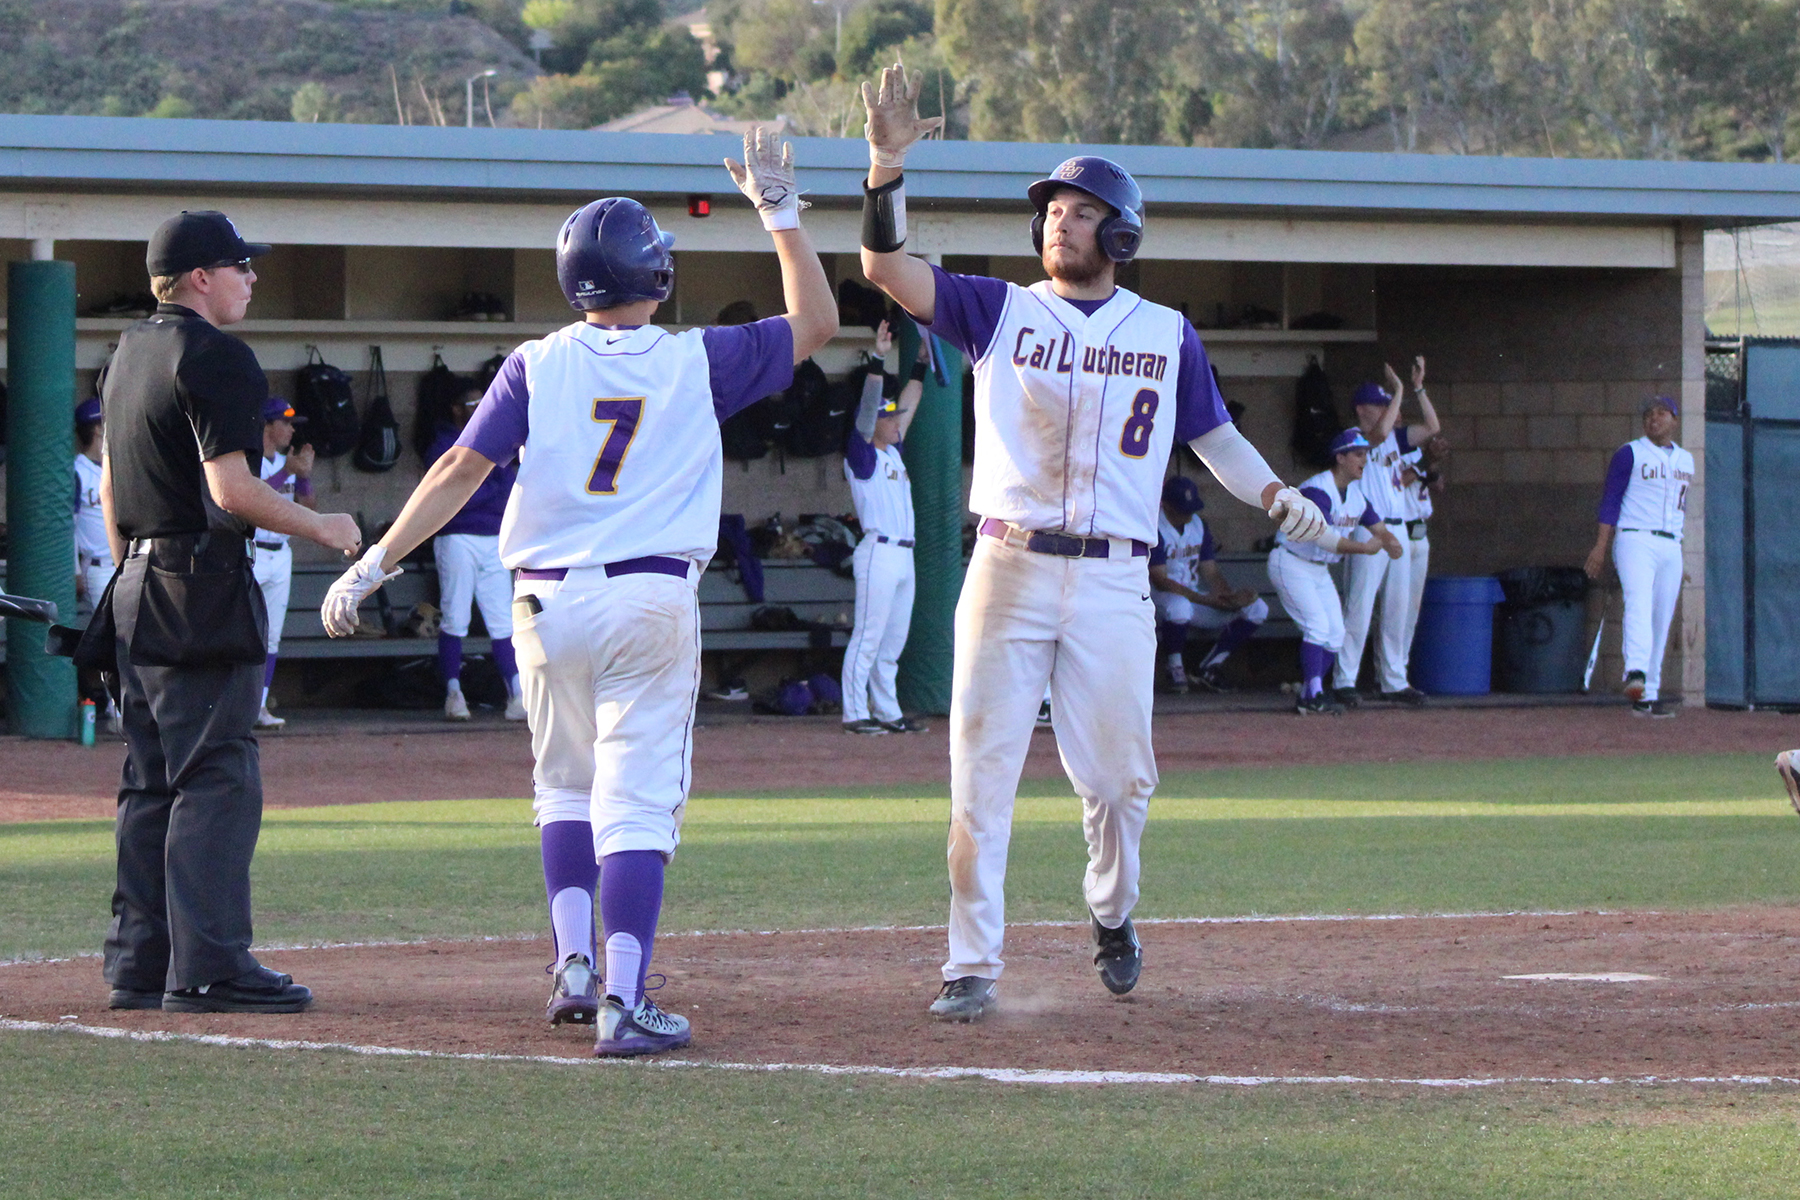 Cal Lutheran improves to 10-0 after exploding for 16 runs on 19 hits in Wednesday's win over Centenary. (Photo Credit: Mariah Zermeno)